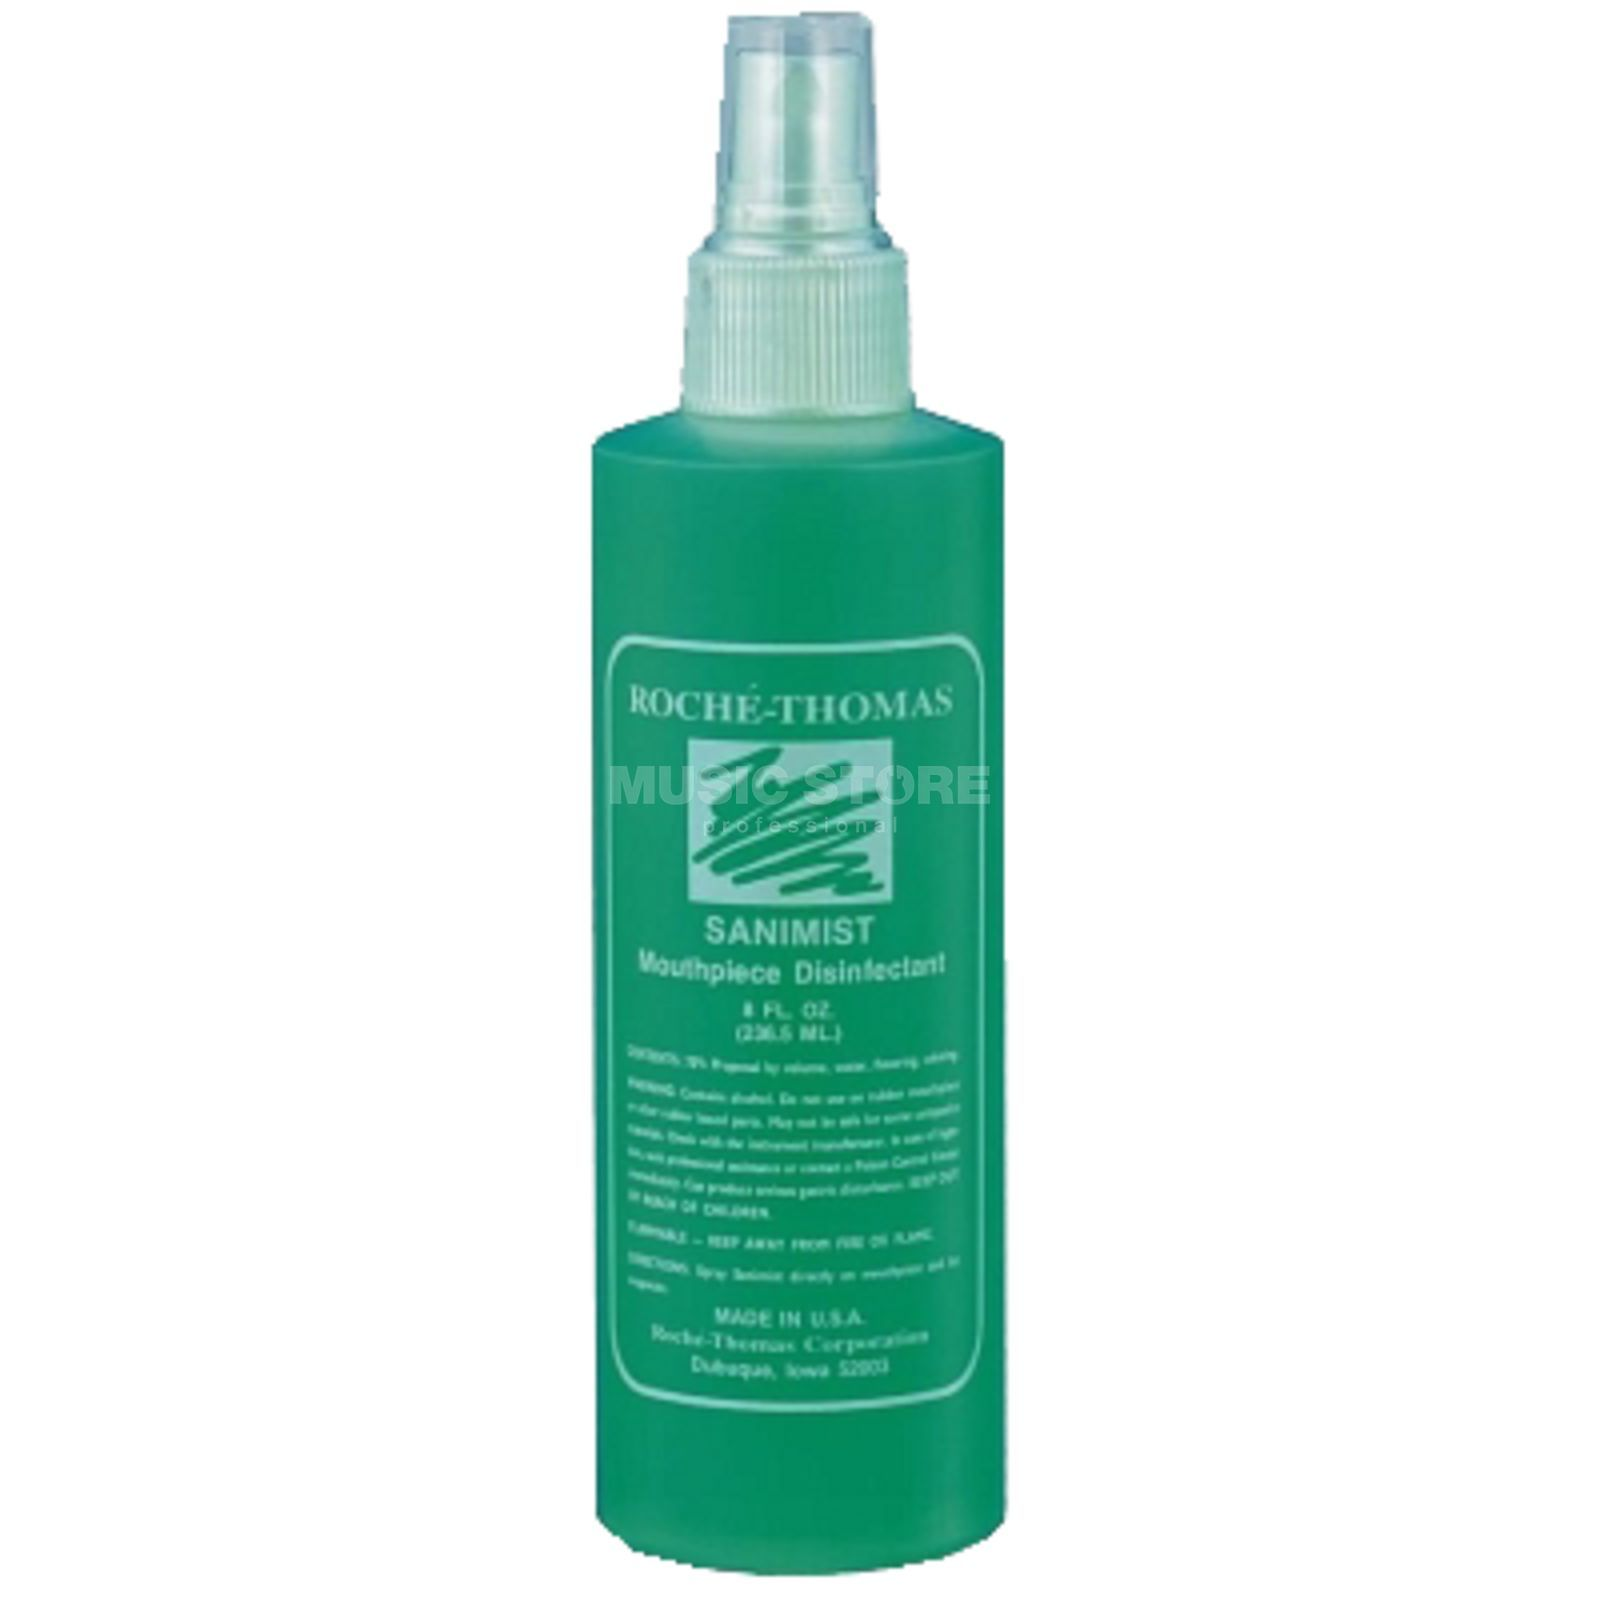 ROCHÉ-THOMAS Cleaning and Disinefectant Spray 235ml (100ml = 5.32Ç) Изображение товара